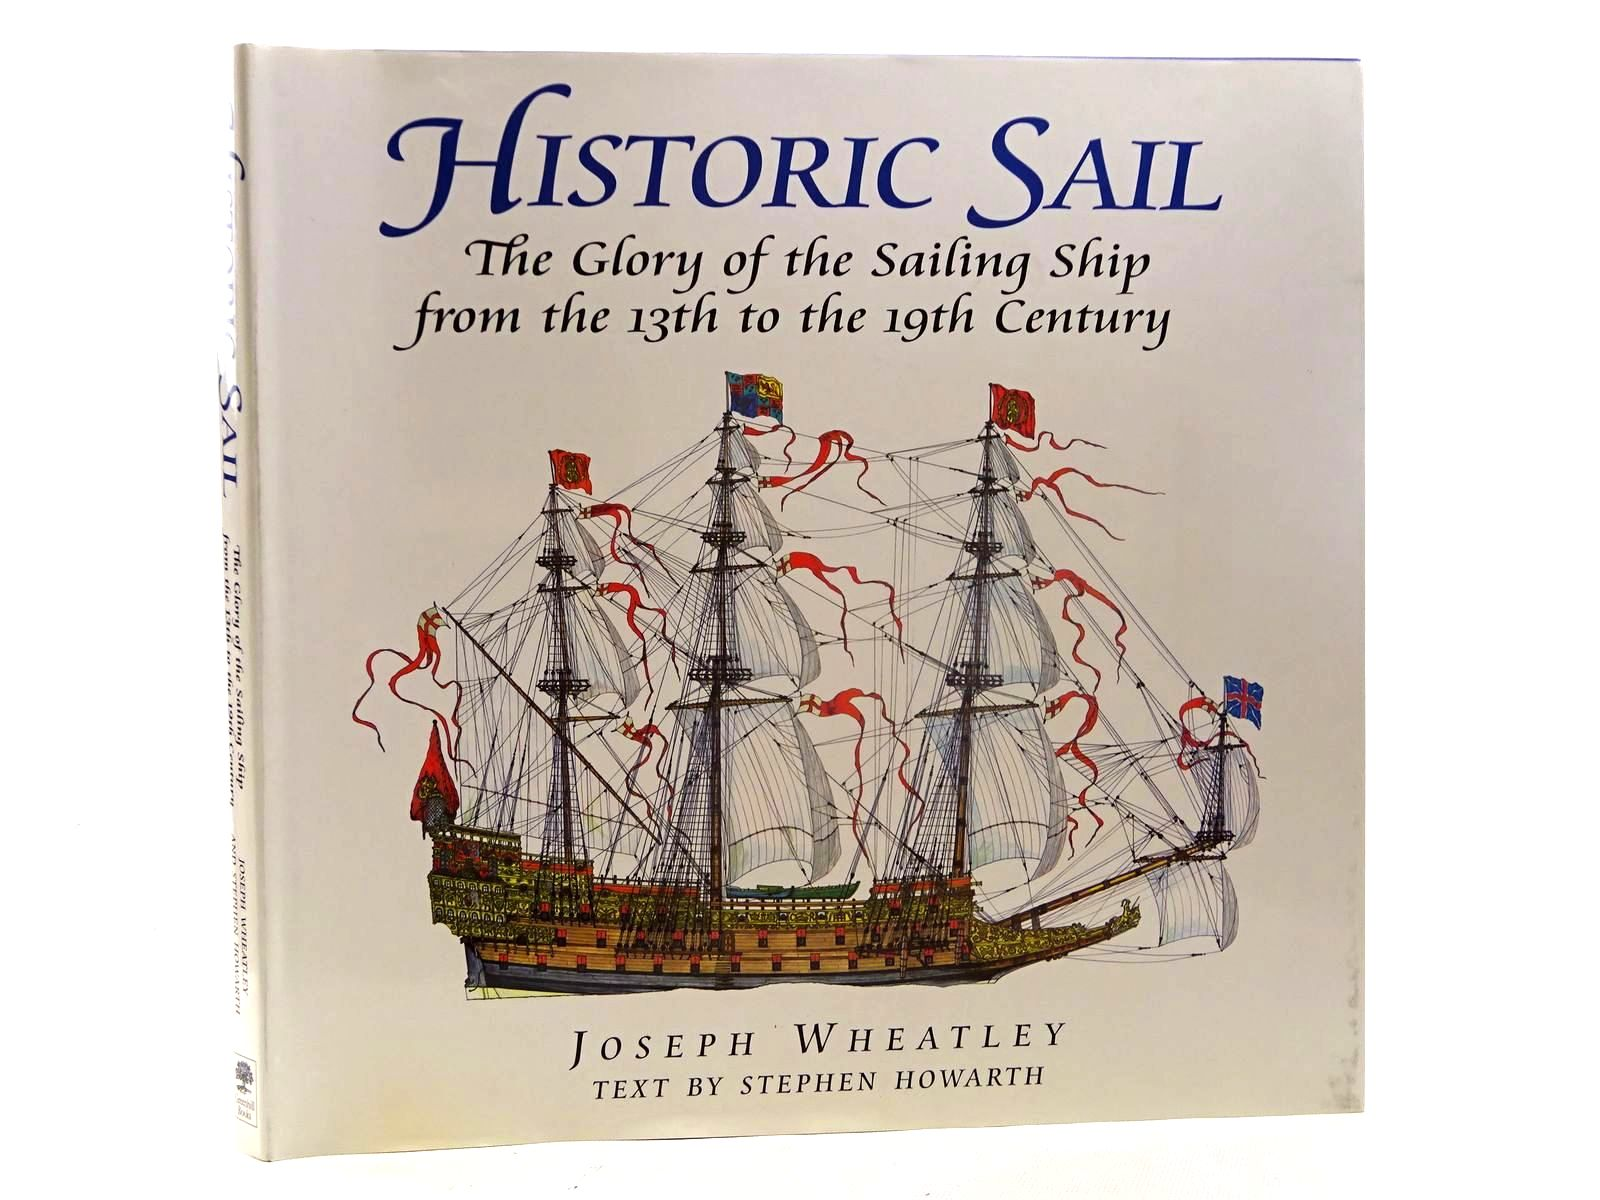 Photo of HISTORIC SAIL THE GLORY OF THE SAILING SHIP FROM THE 13TH TO THE 19TH CENTURY